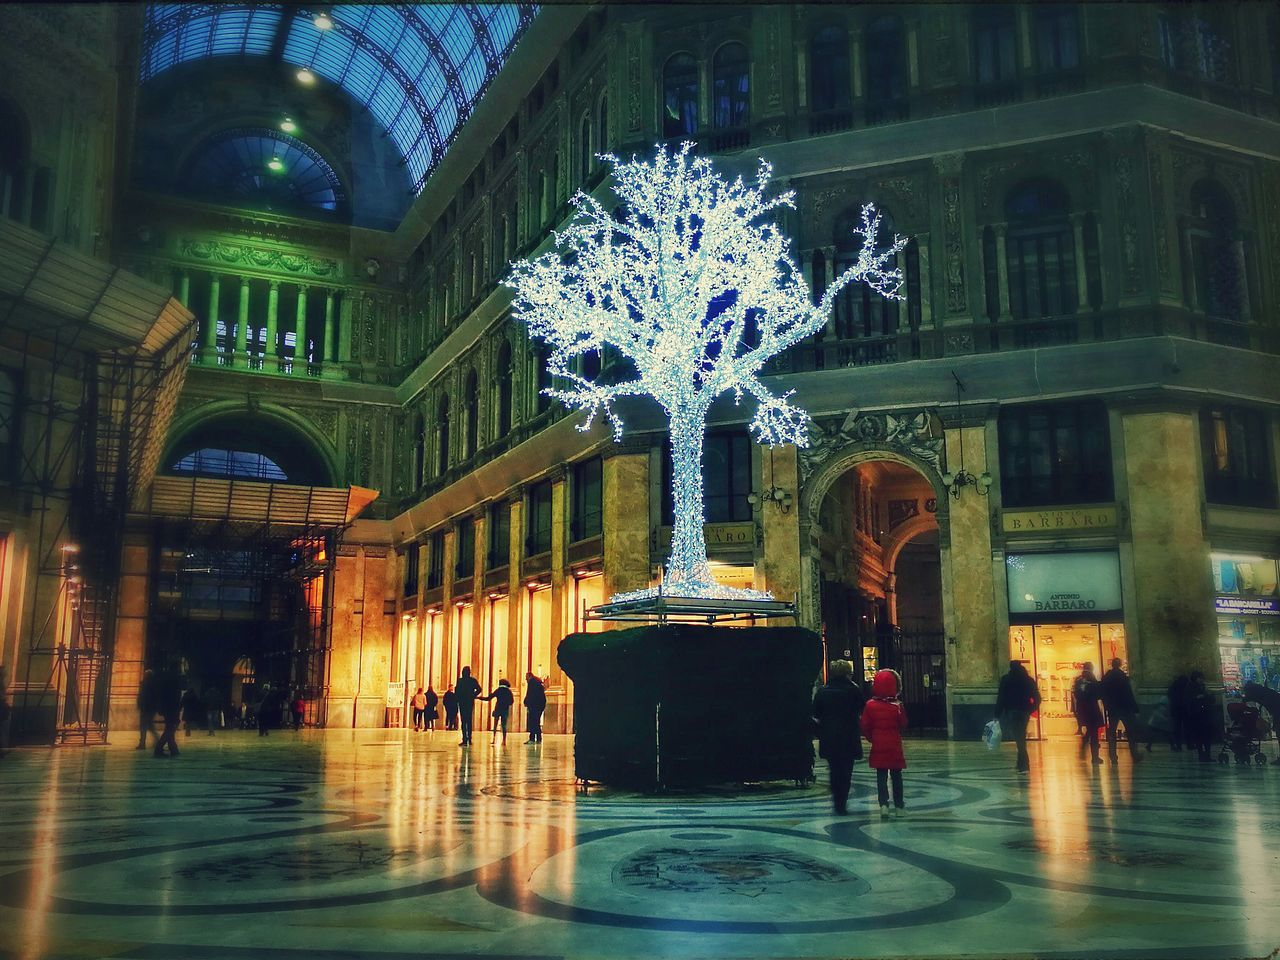 Architecture Built Structure Christmas Tree Christmas Lights Naples, Italy Galleria Umberto Napoli